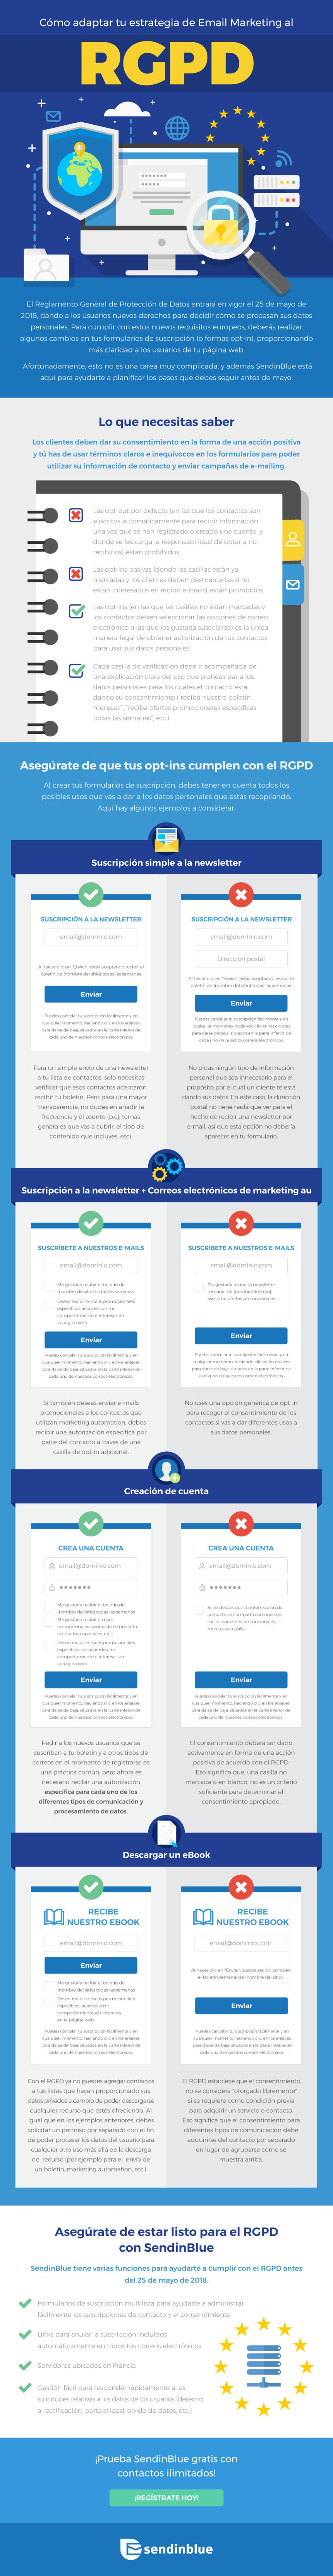 Cómo adaptar tu estrategia de Email Marketing al RGPD #infografia #marketing #rgpd